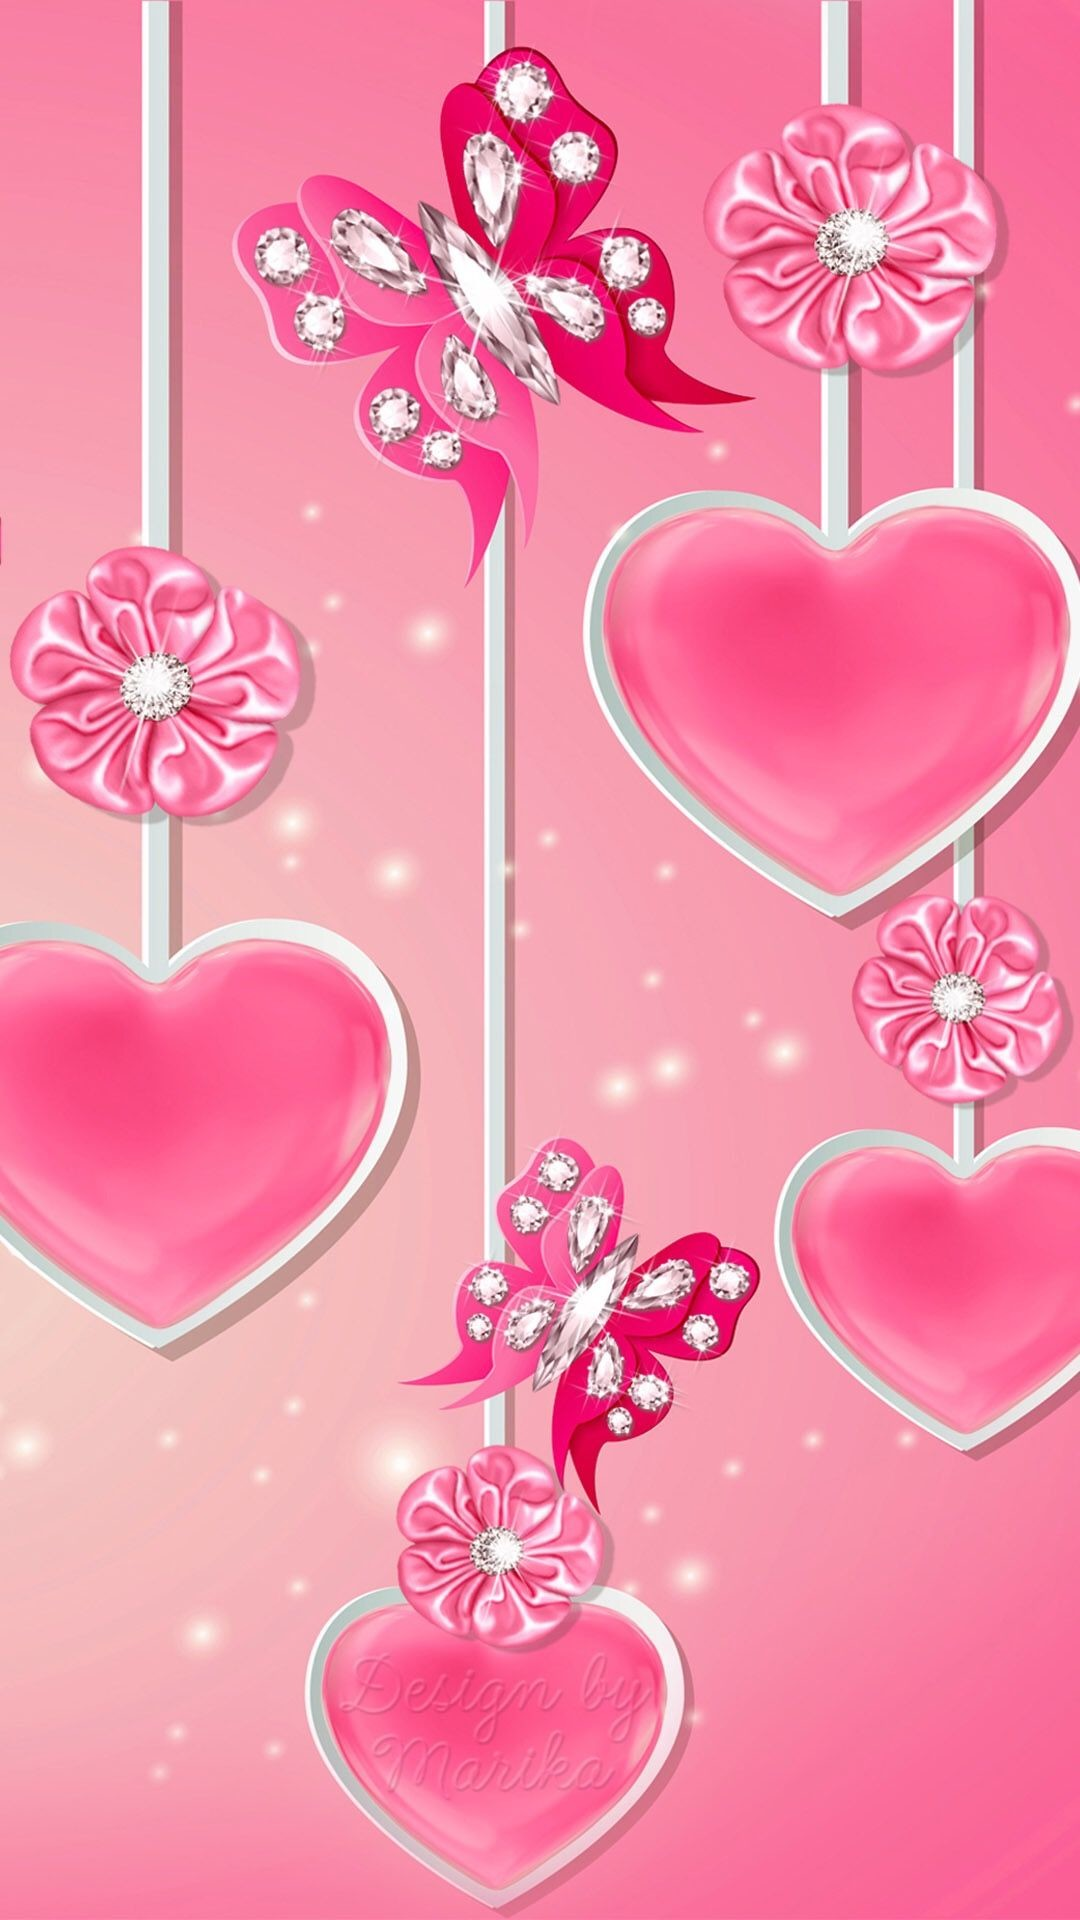 Res: 1080x1920, Pink Hearts Flowers and Butterflies Wallpaper